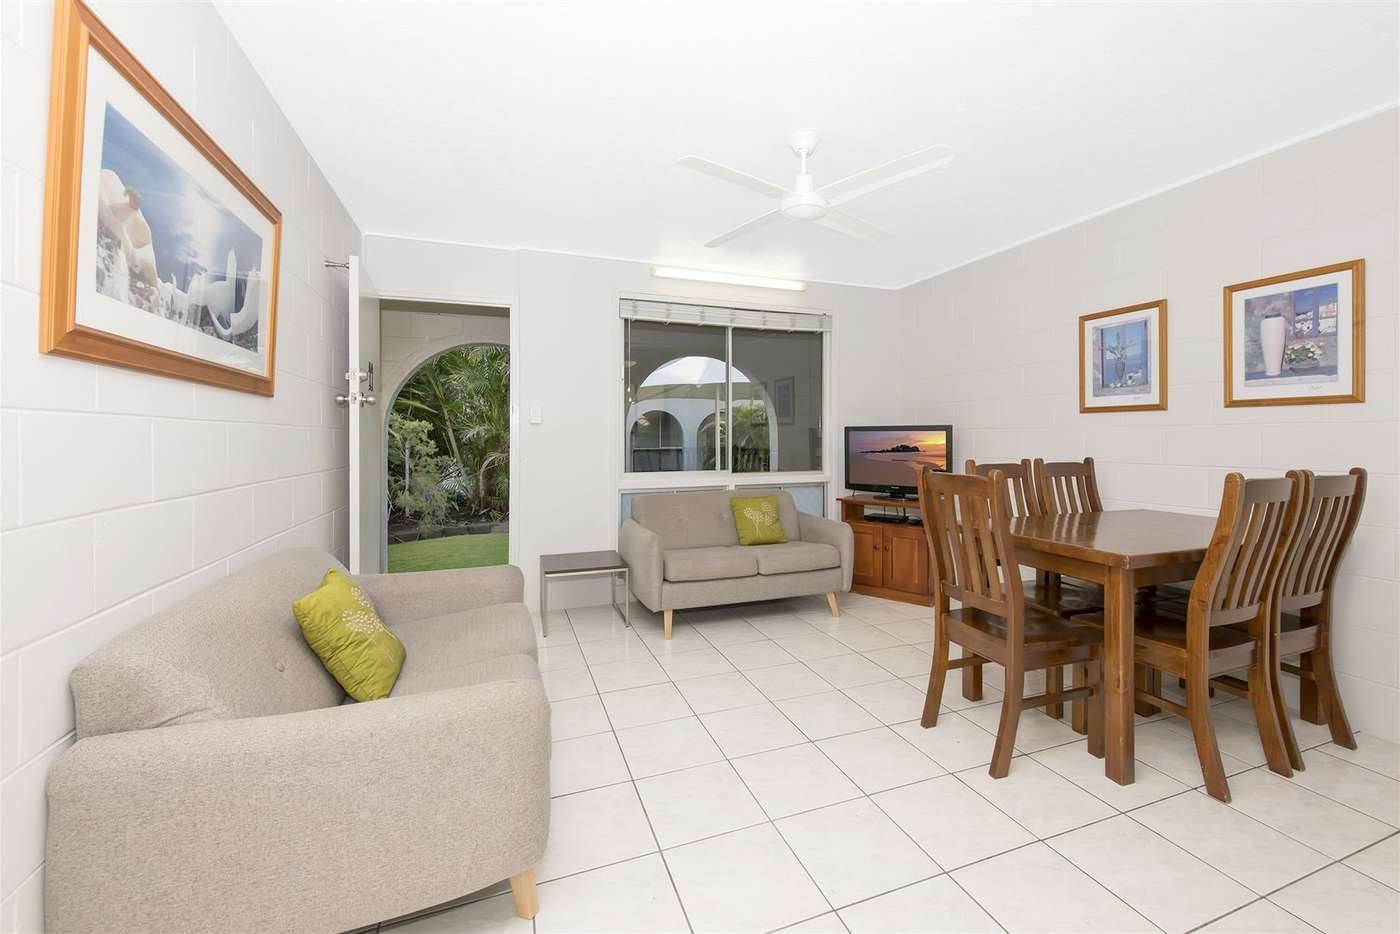 Seventh view of Homely blockOfUnits listing, 30 Rose Street, North Ward QLD 4810